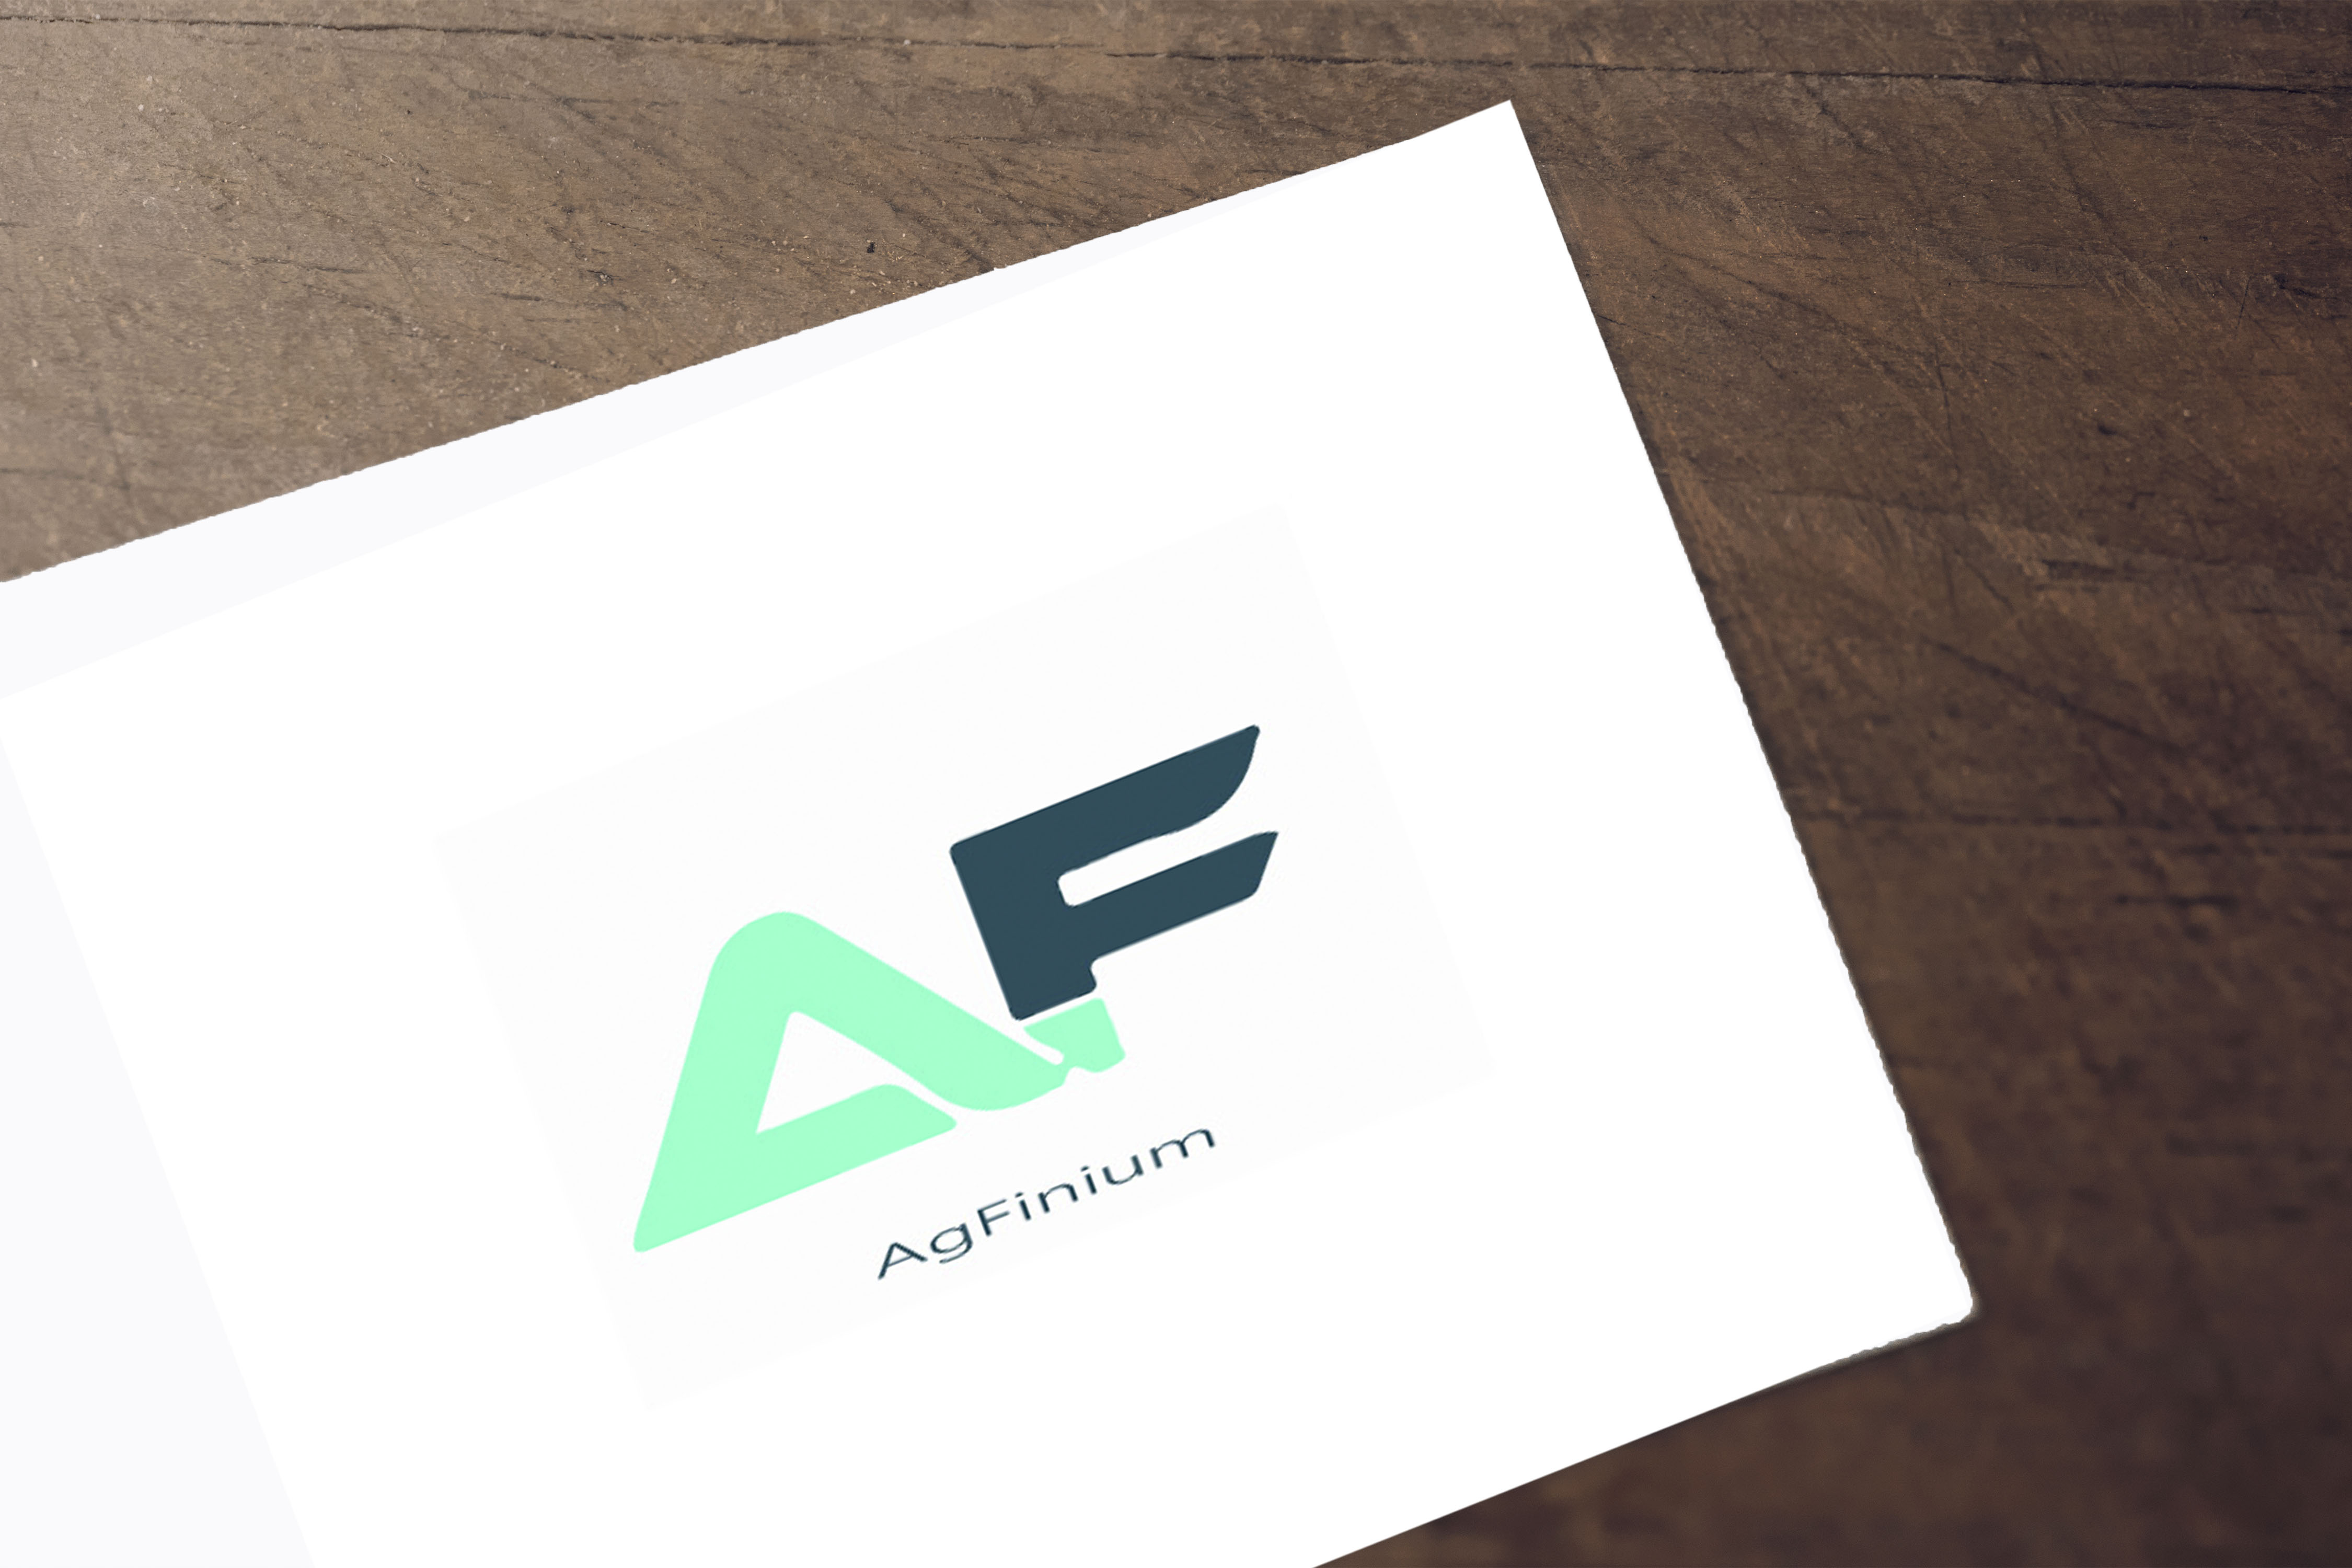 I can design a professional logo for business, company, brand